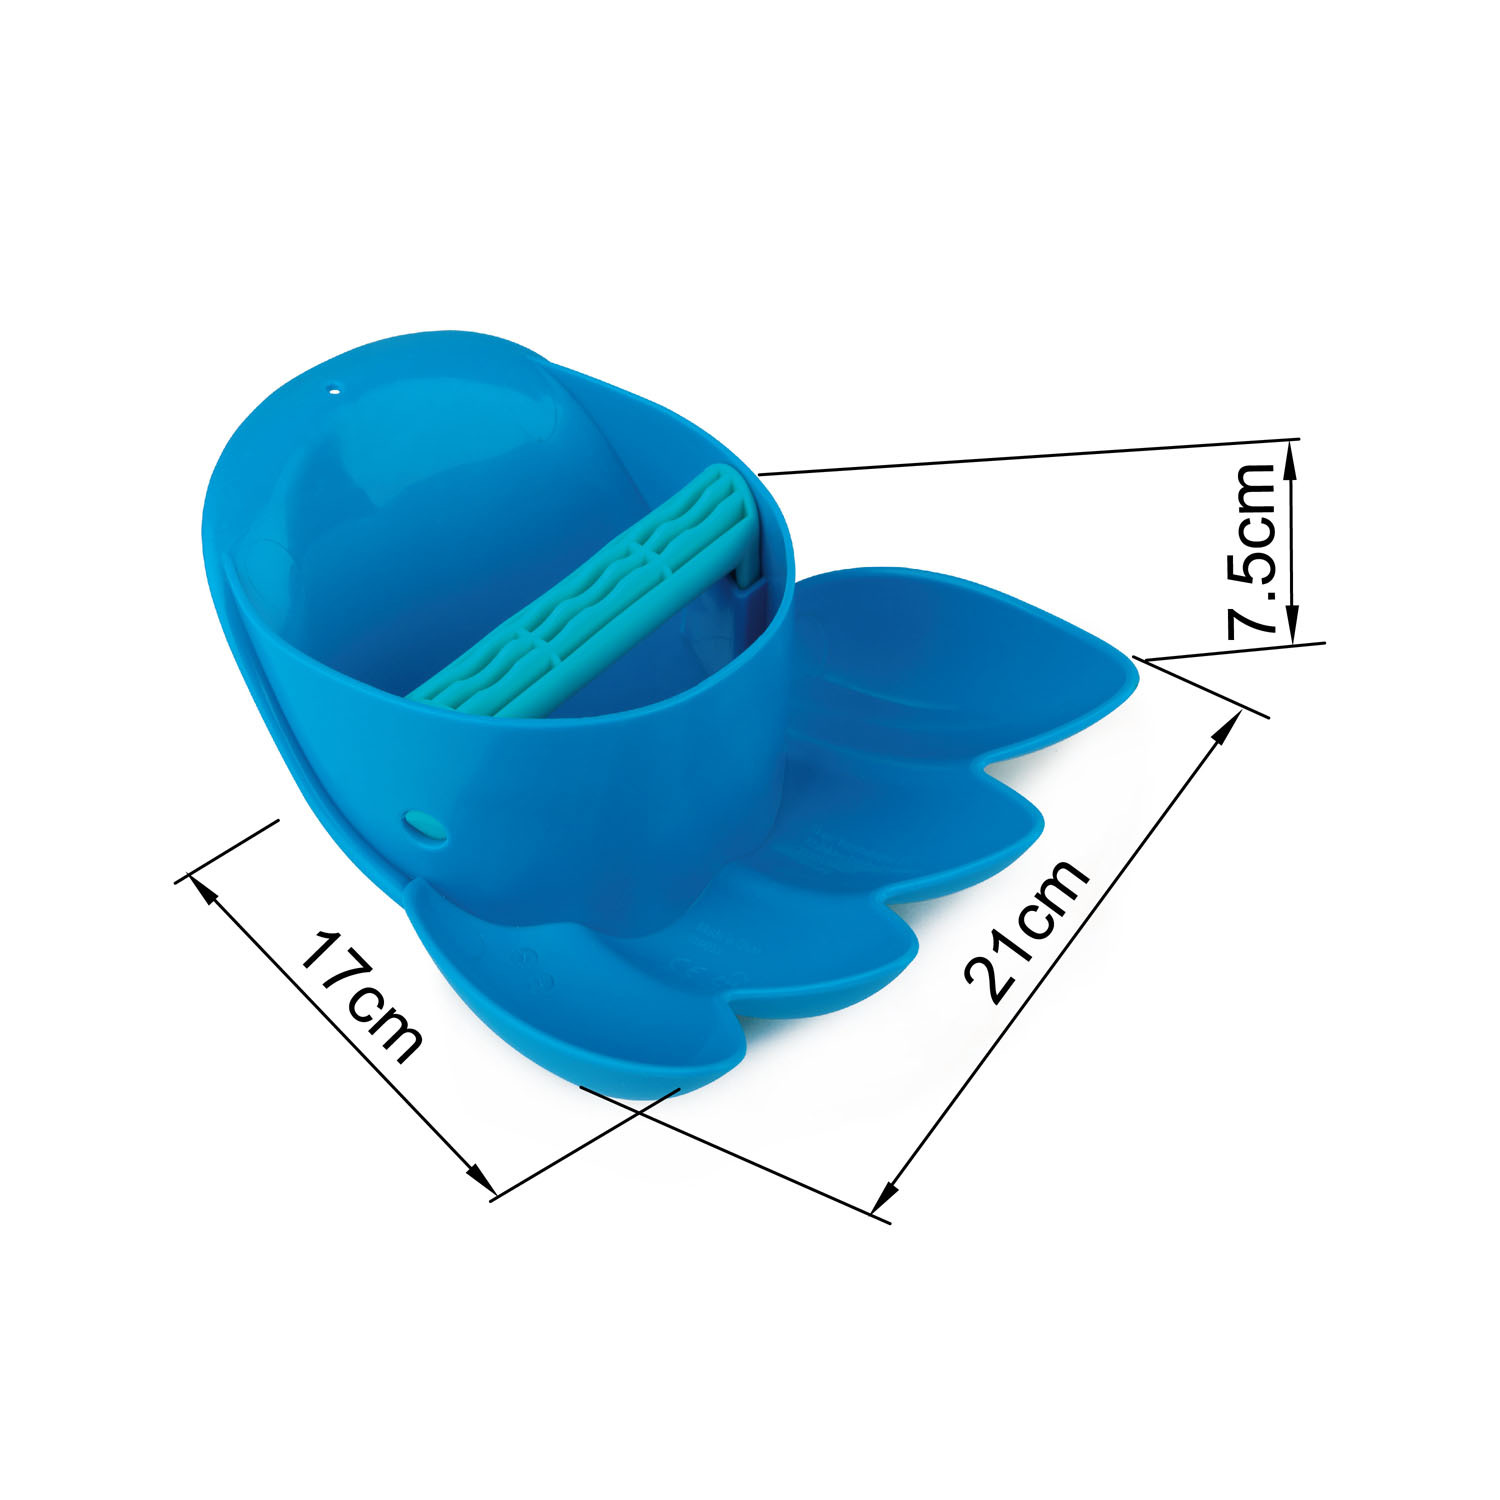 Hape: Power Paw Sand Toy - Blue image